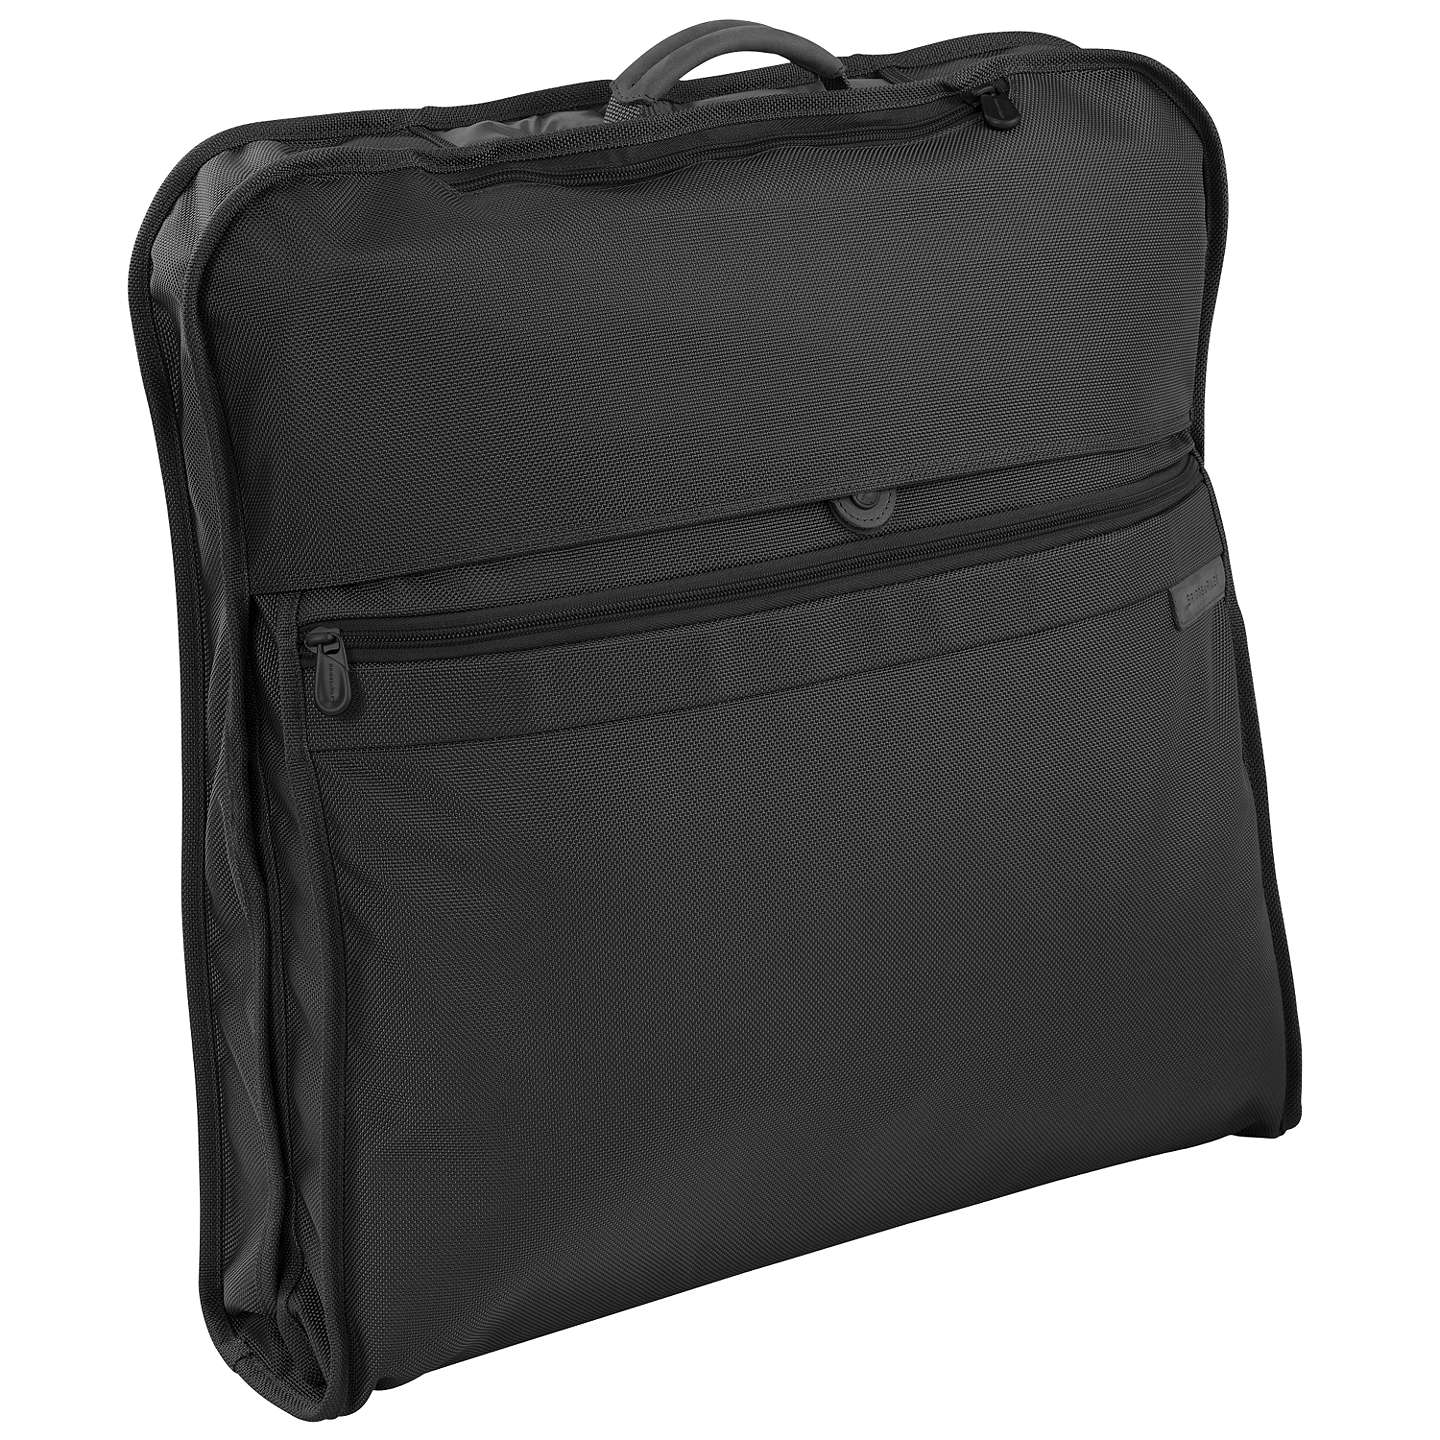 Briggs riley classic suit and garment bag black at john for Wedding dress garment bag for air travel